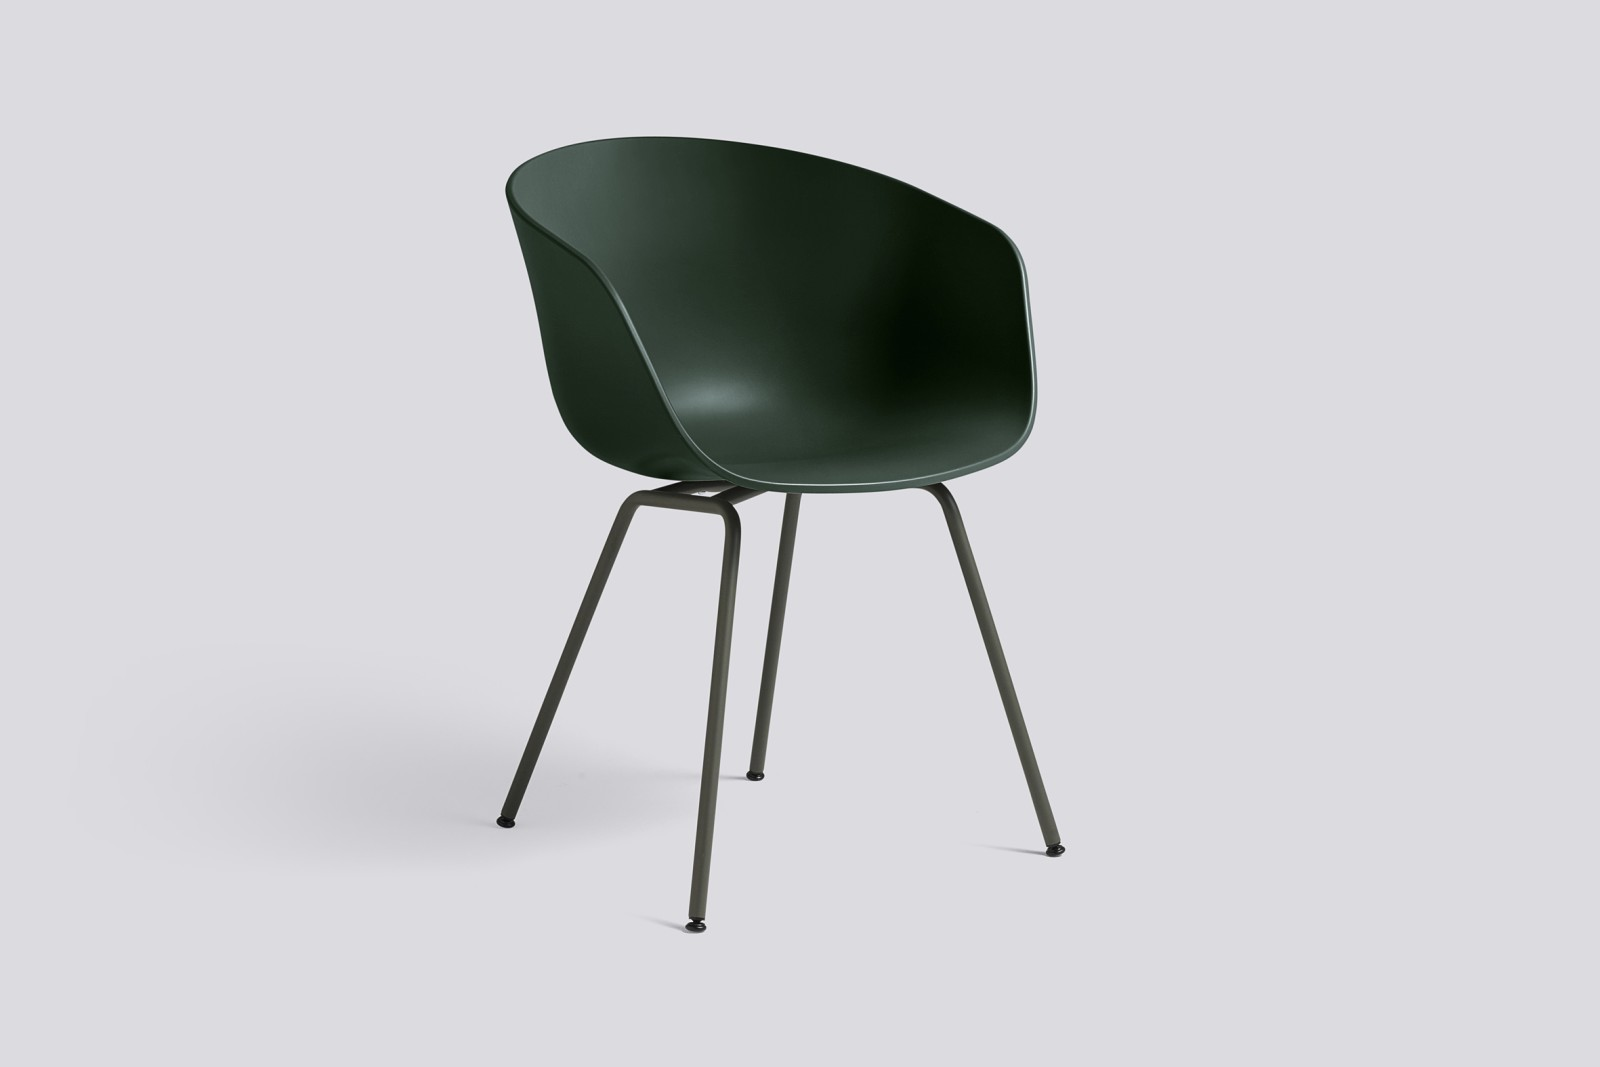 About A Chair AAC26 Green, Green Powder coated Steel